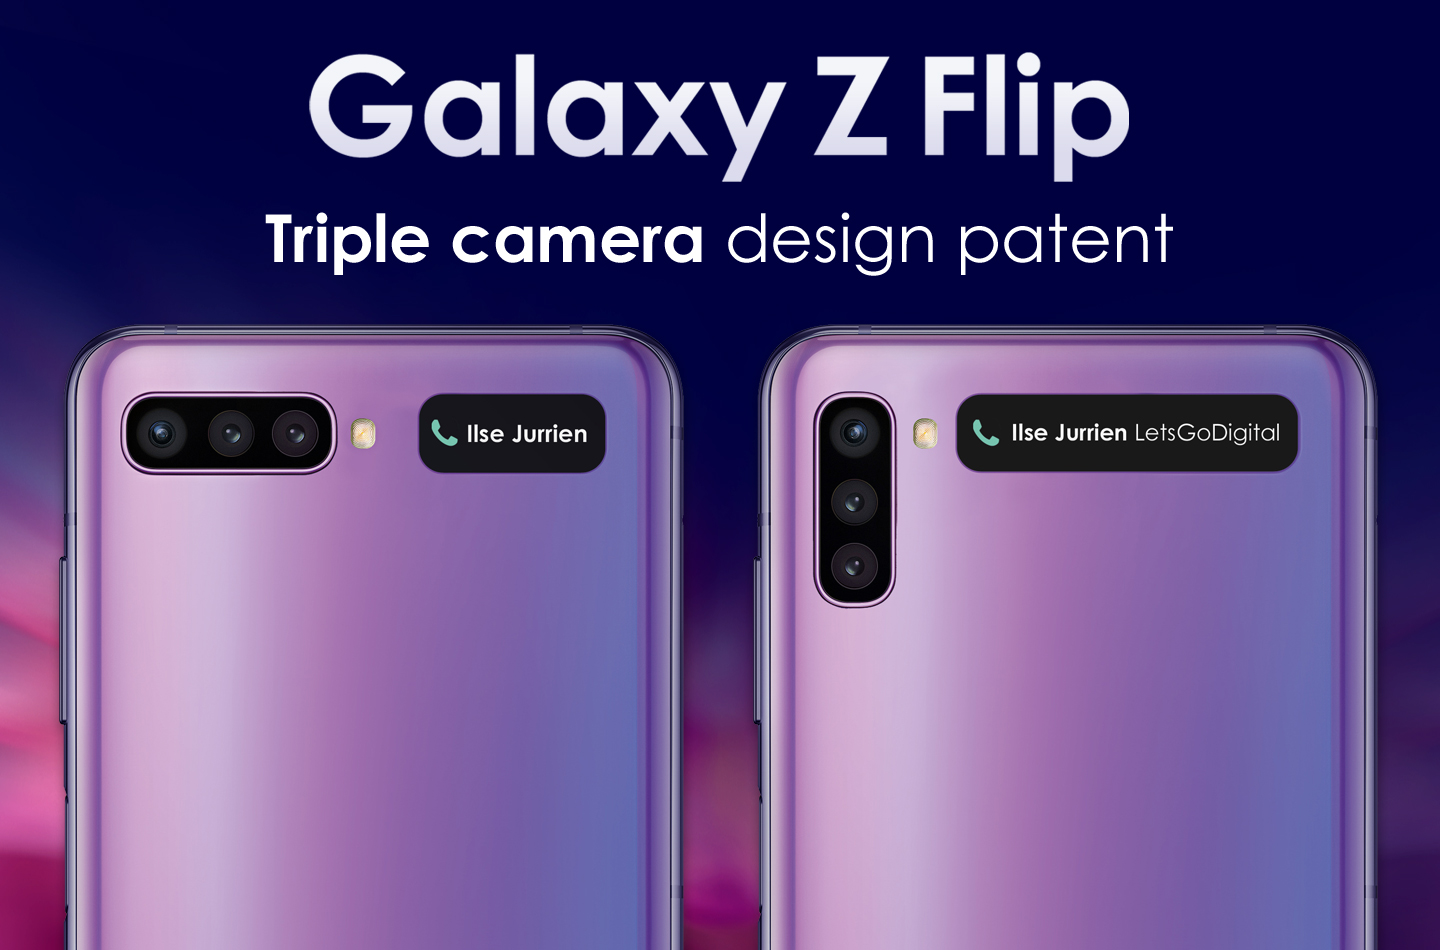 Samsung Galaxy Z Flip triple camera